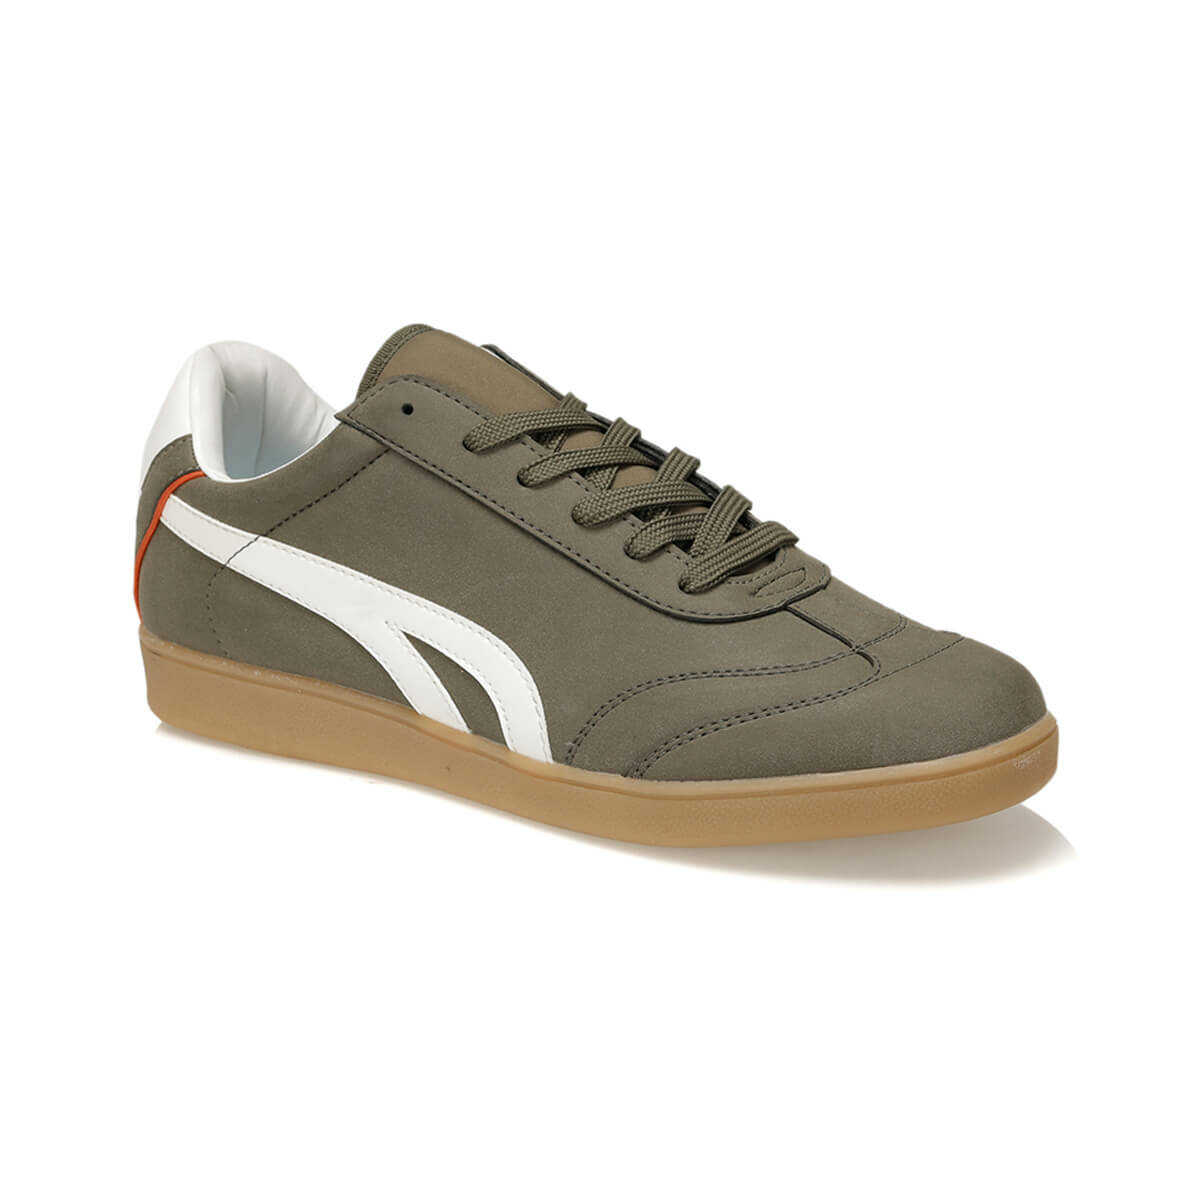 FLO 1467-1 C 19 Khaki Male Basic Casual Shoes Forester